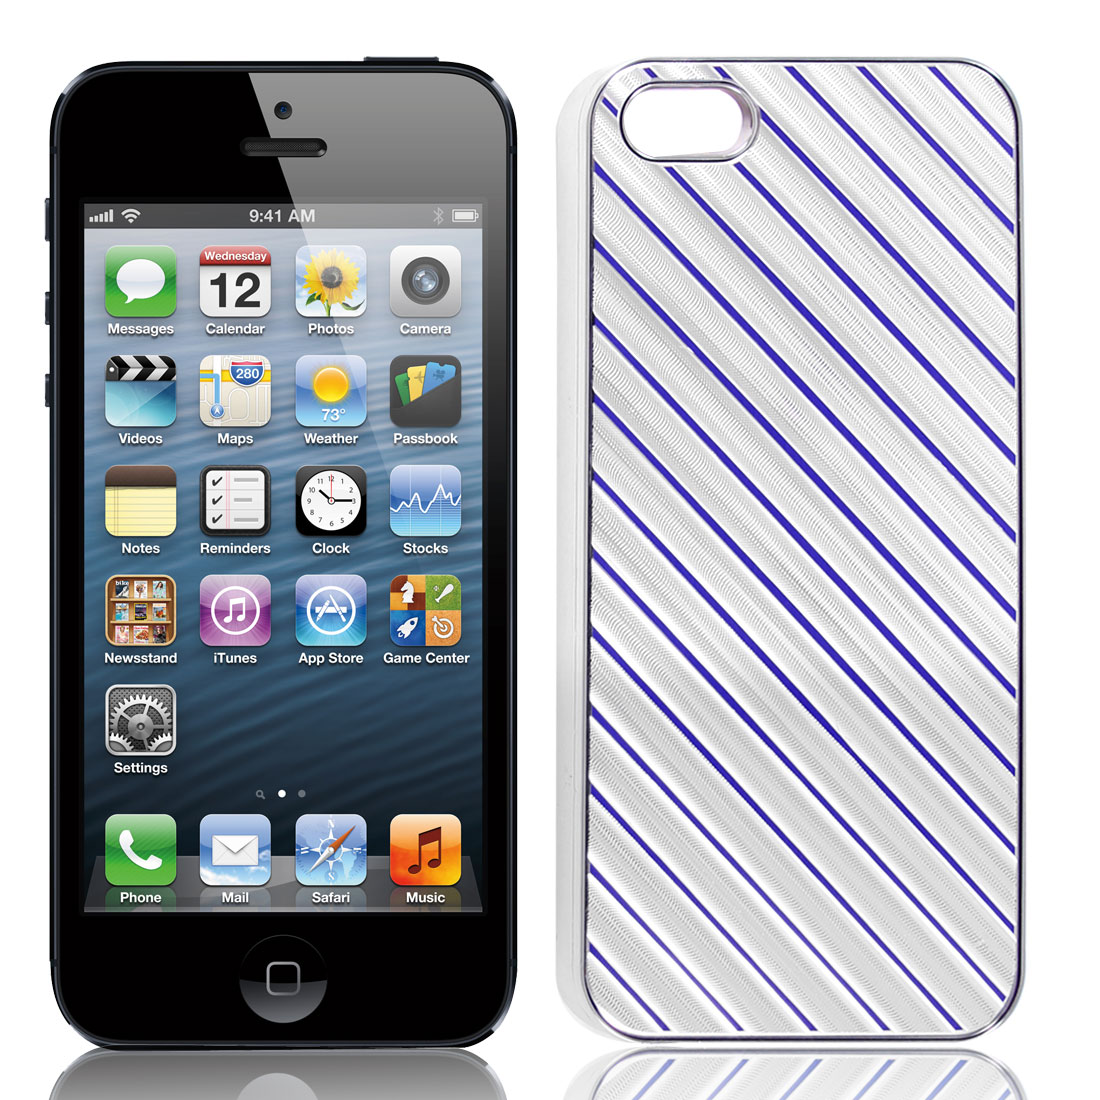 Silver Tone Blue Slanted Striped Hard Plastic Back Case Shell for iPhone 5 5G